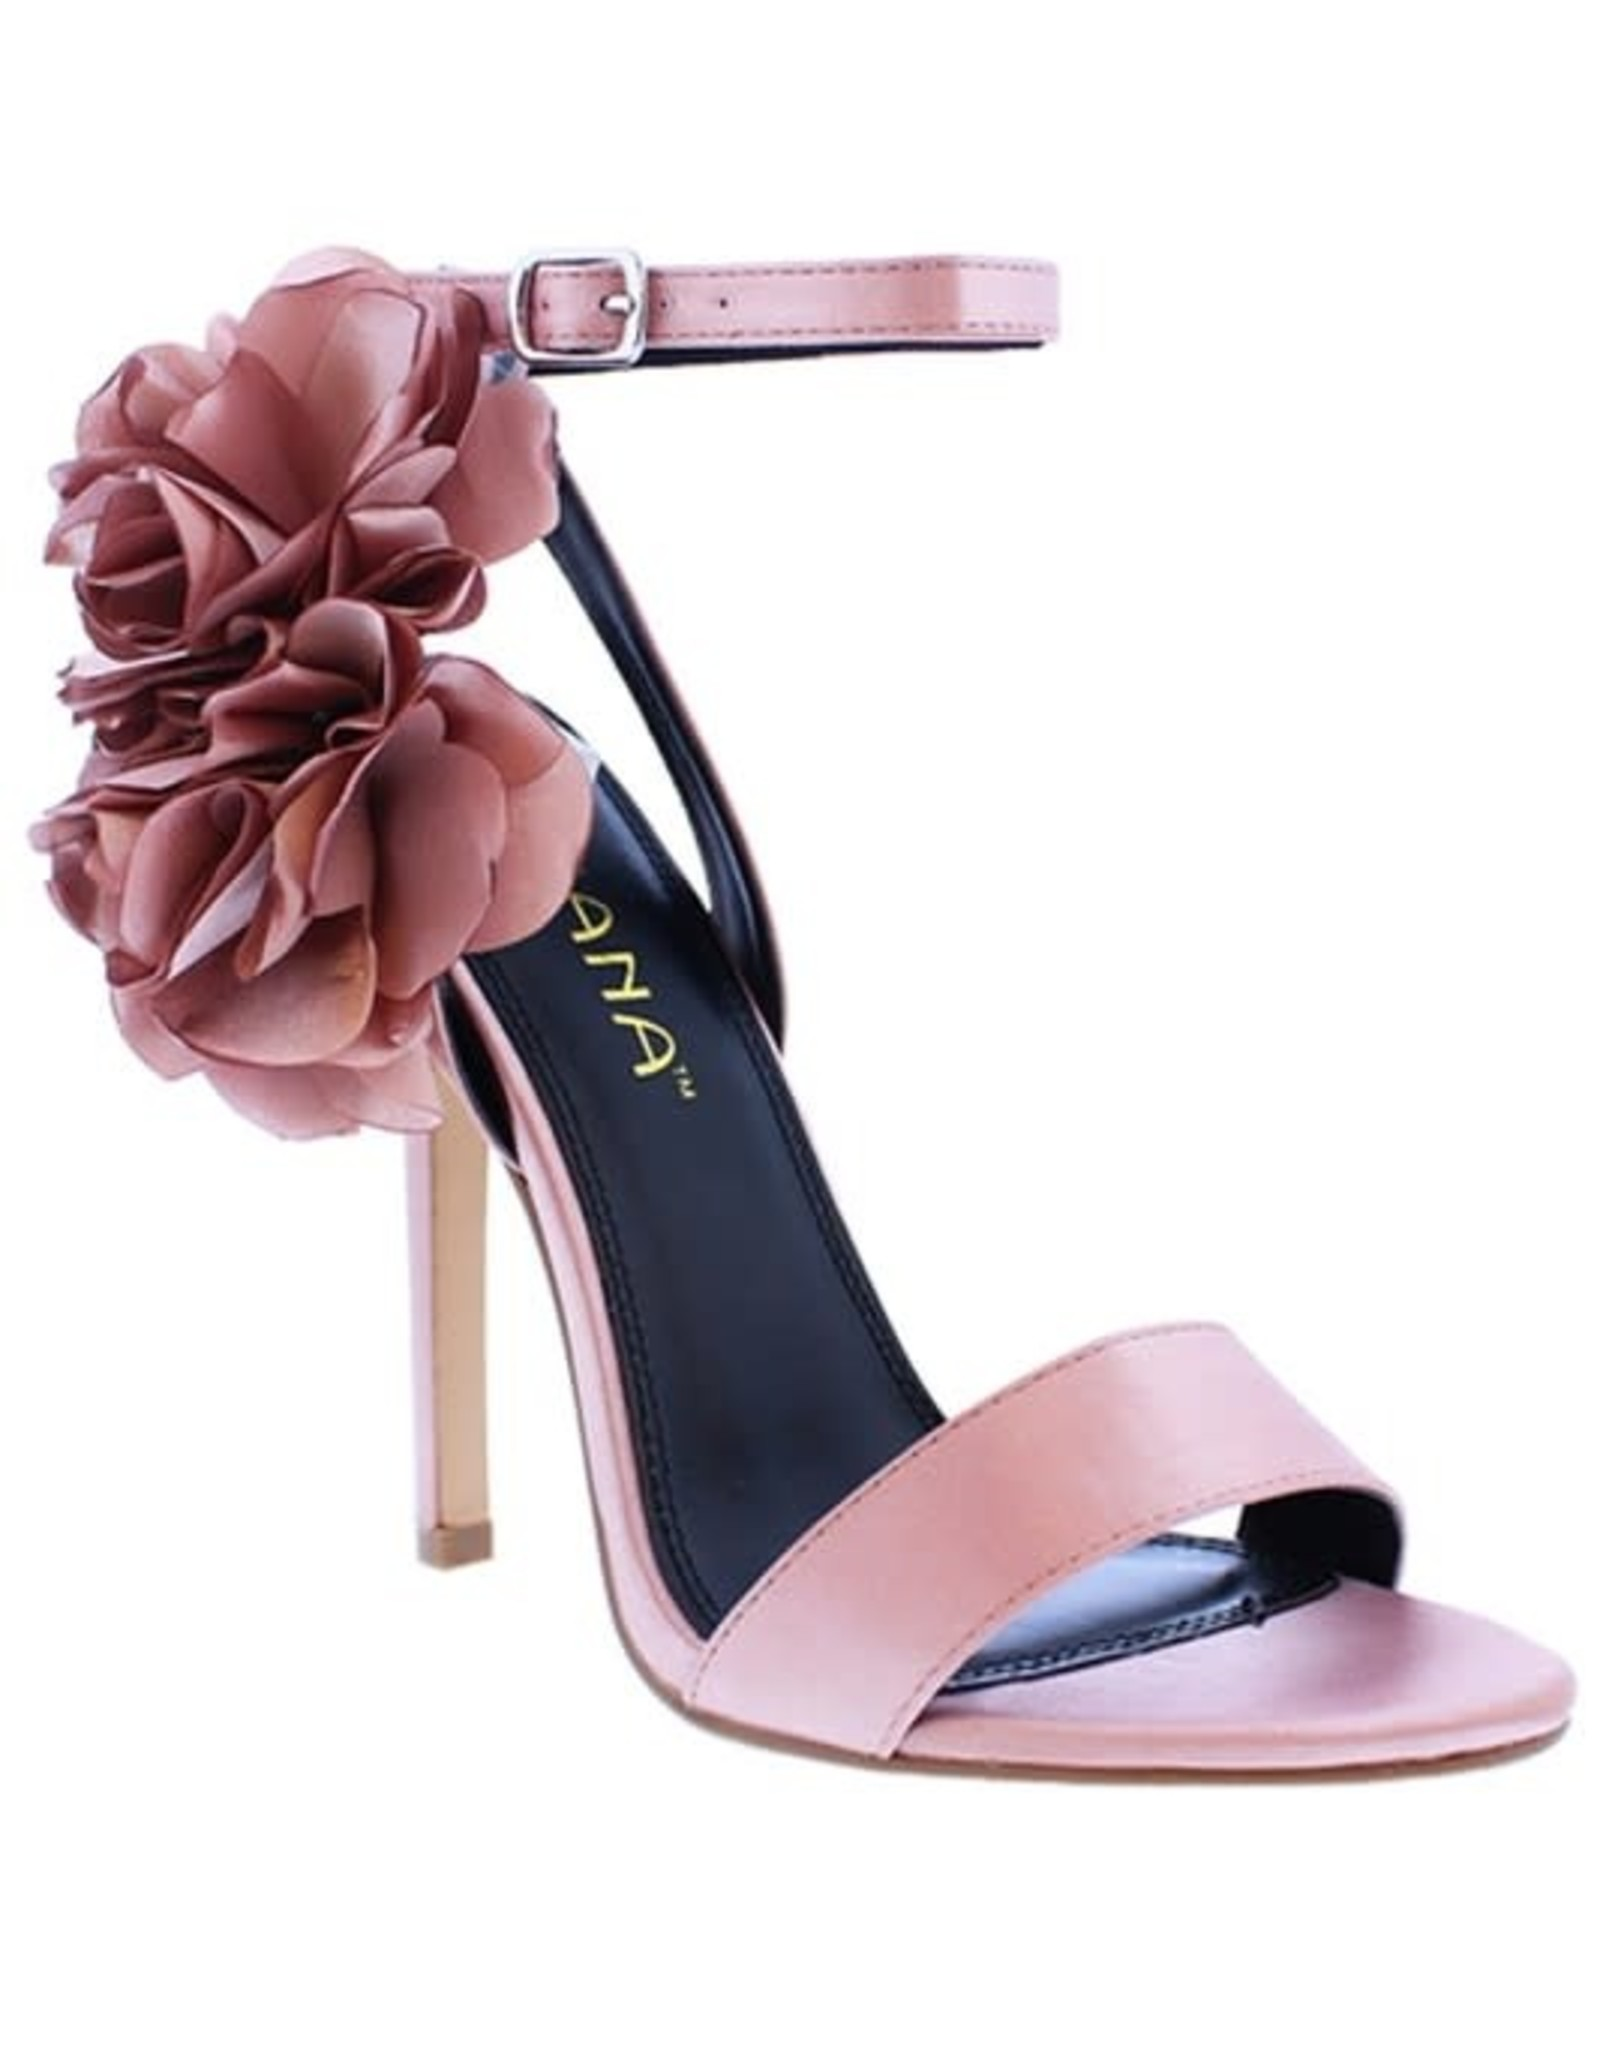 Blooming Season Heels Pink